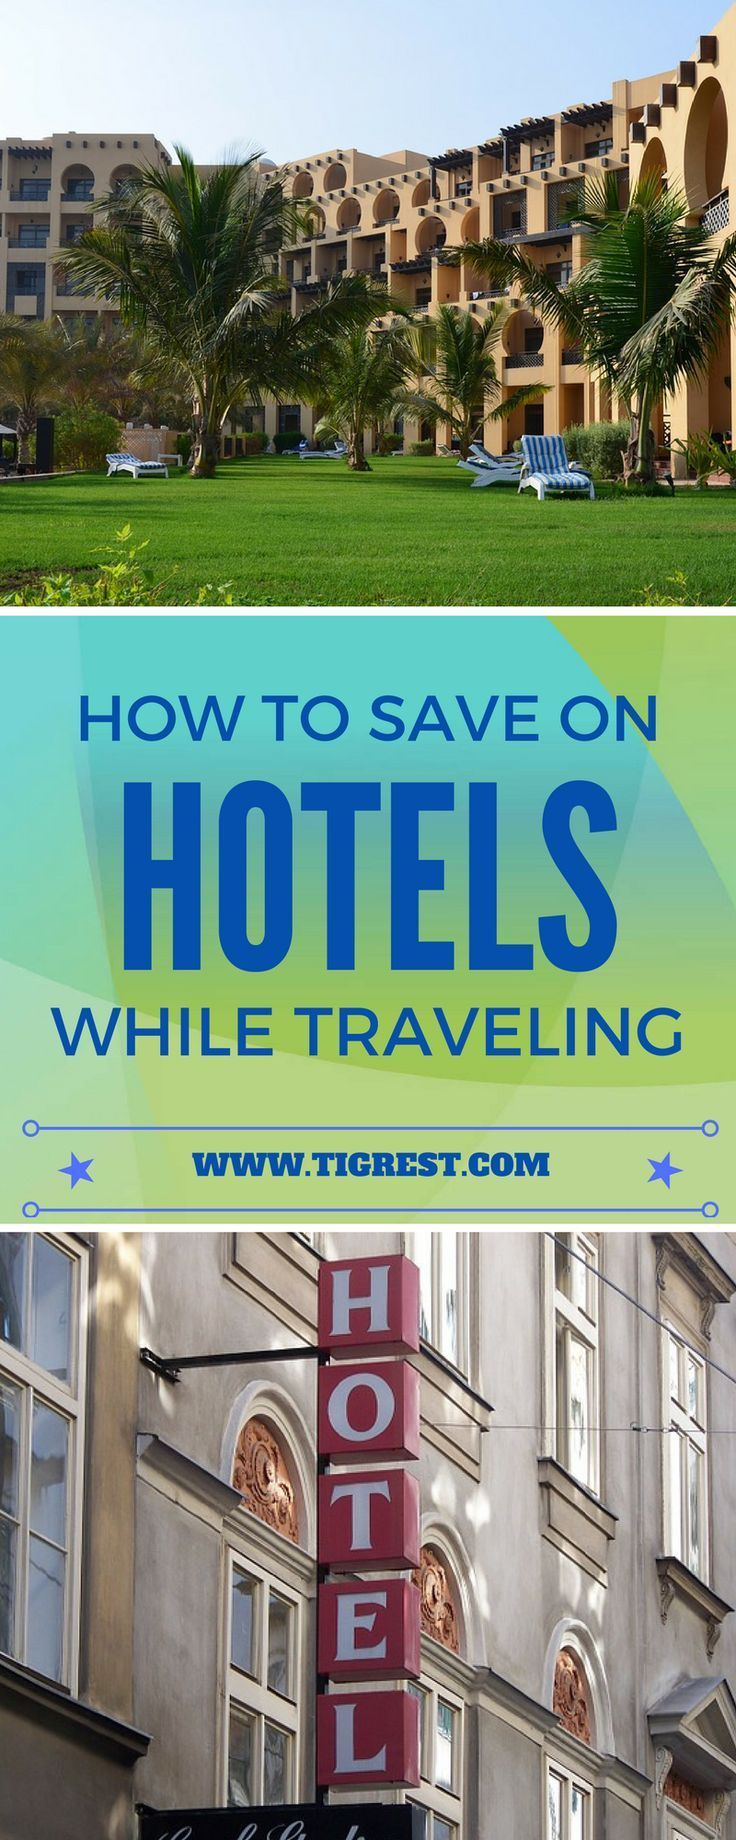 How to get hotel discounts and negotiate better rates